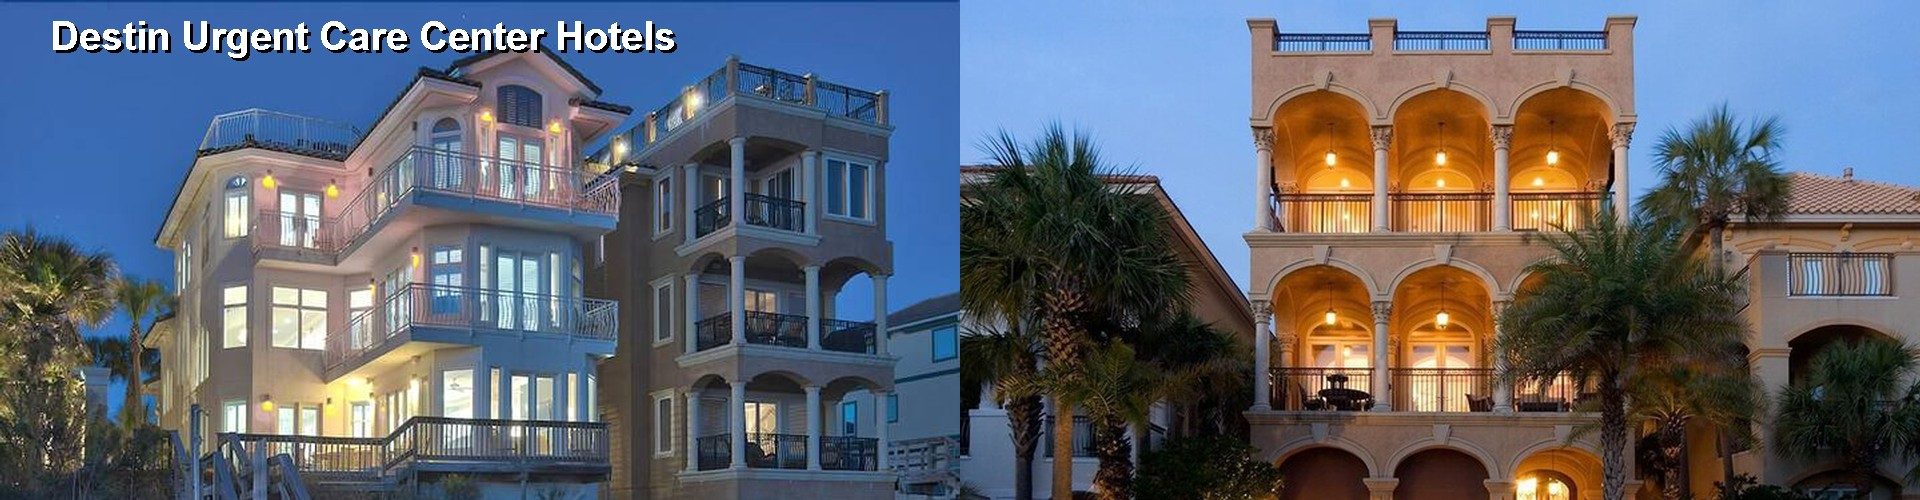 5 Best Hotels near Destin Urgent Care Center